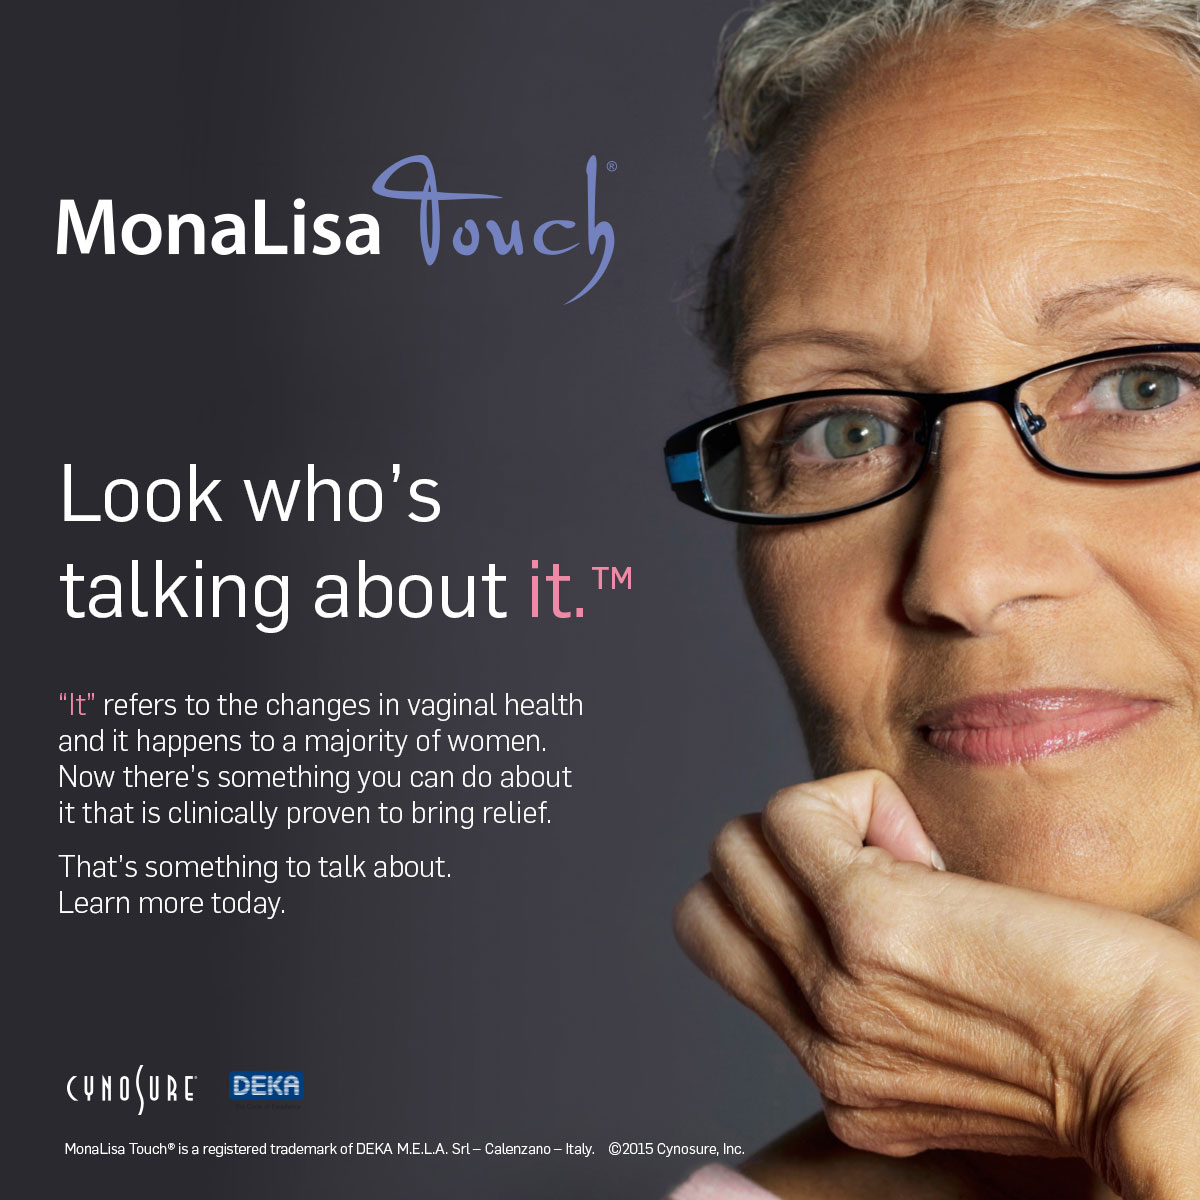 MonaLisa Touch - Shaghayegh M. DeNoble, MD, FACOG, Advanced Gynecology and Laparoscopy of North Jersey